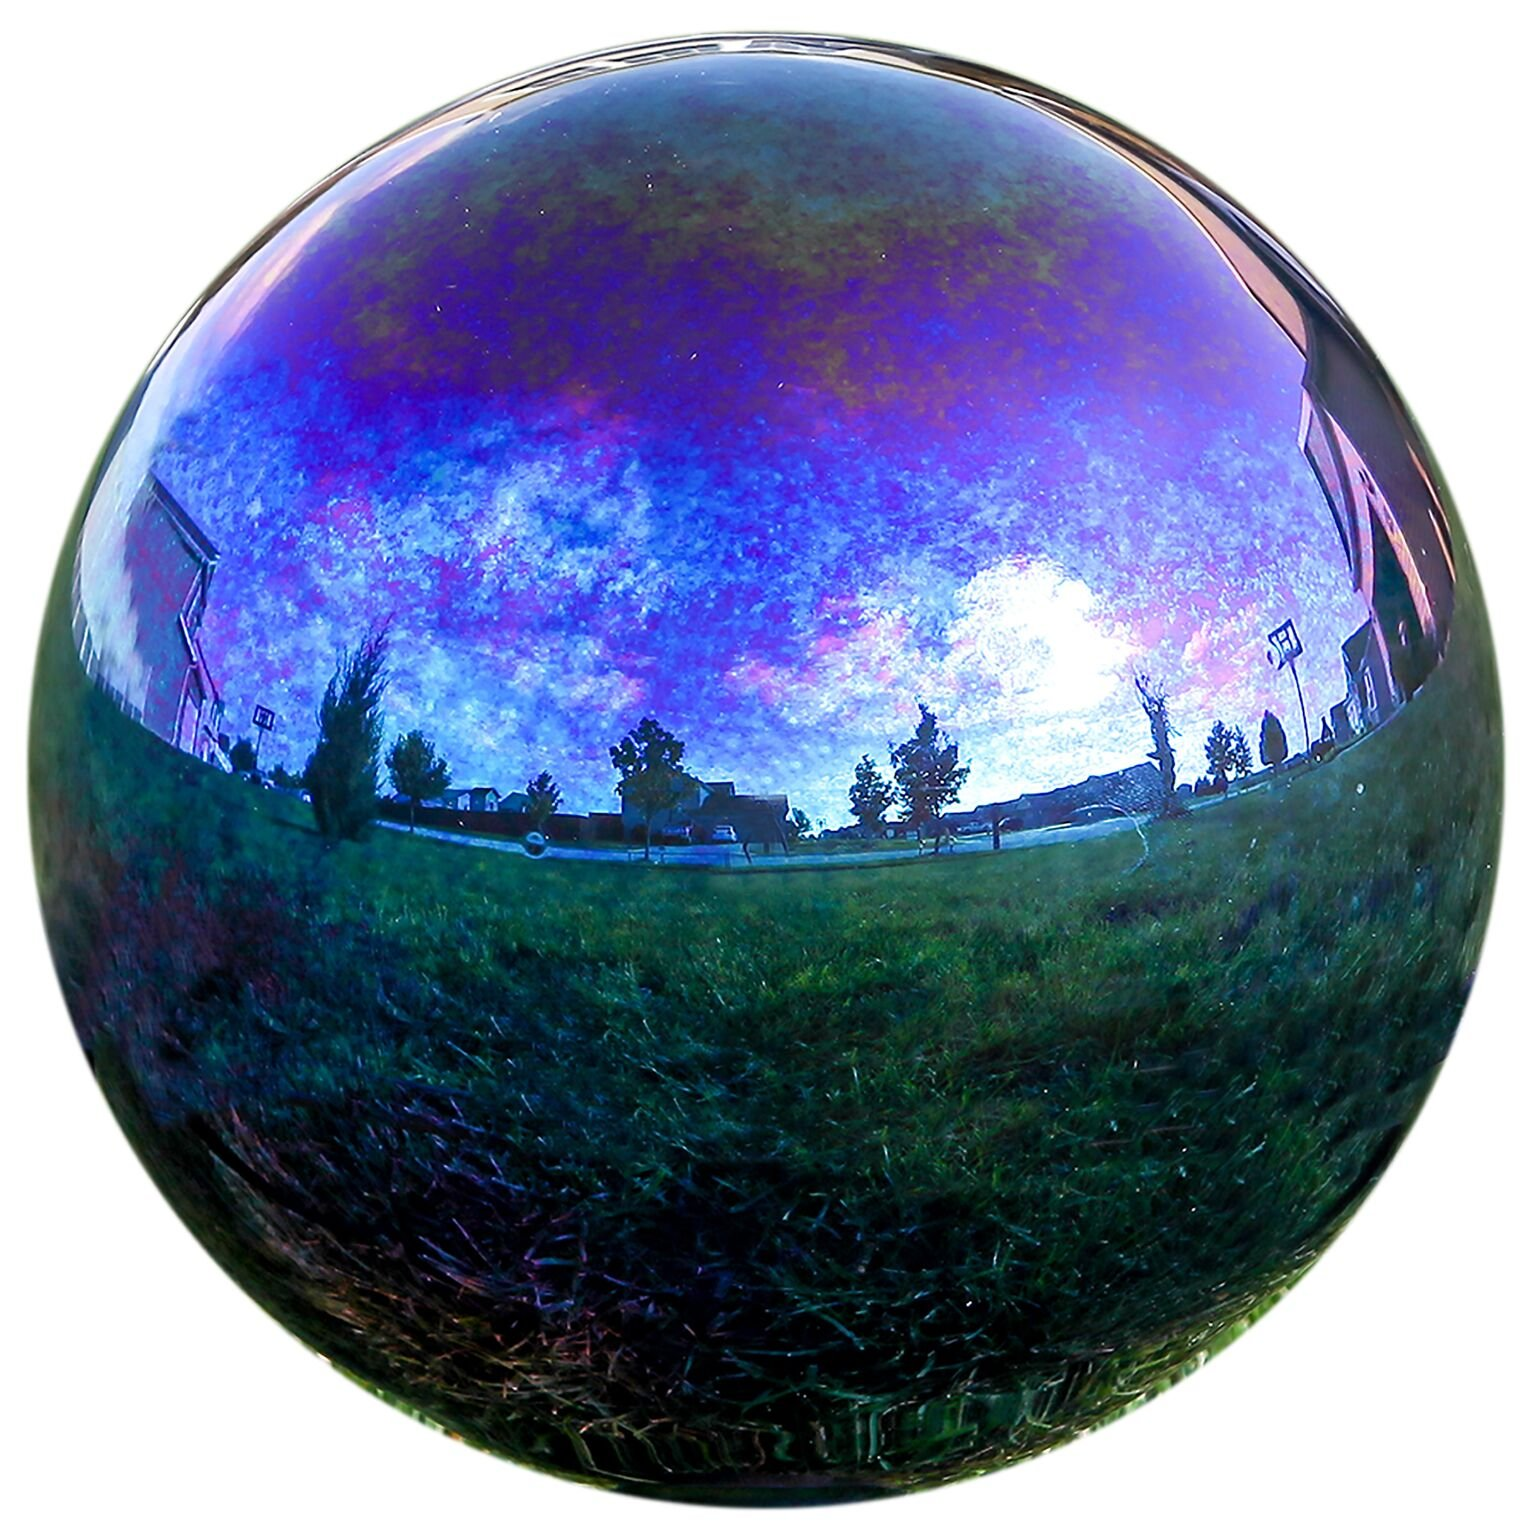 Lily's Home Glass Gazing Mirror Ball, Colorful and Shiny Addition to Any Garden or Home, Ideal As a Housewarming Gift, Sparkling Rainbow (12 Inches Diameter)